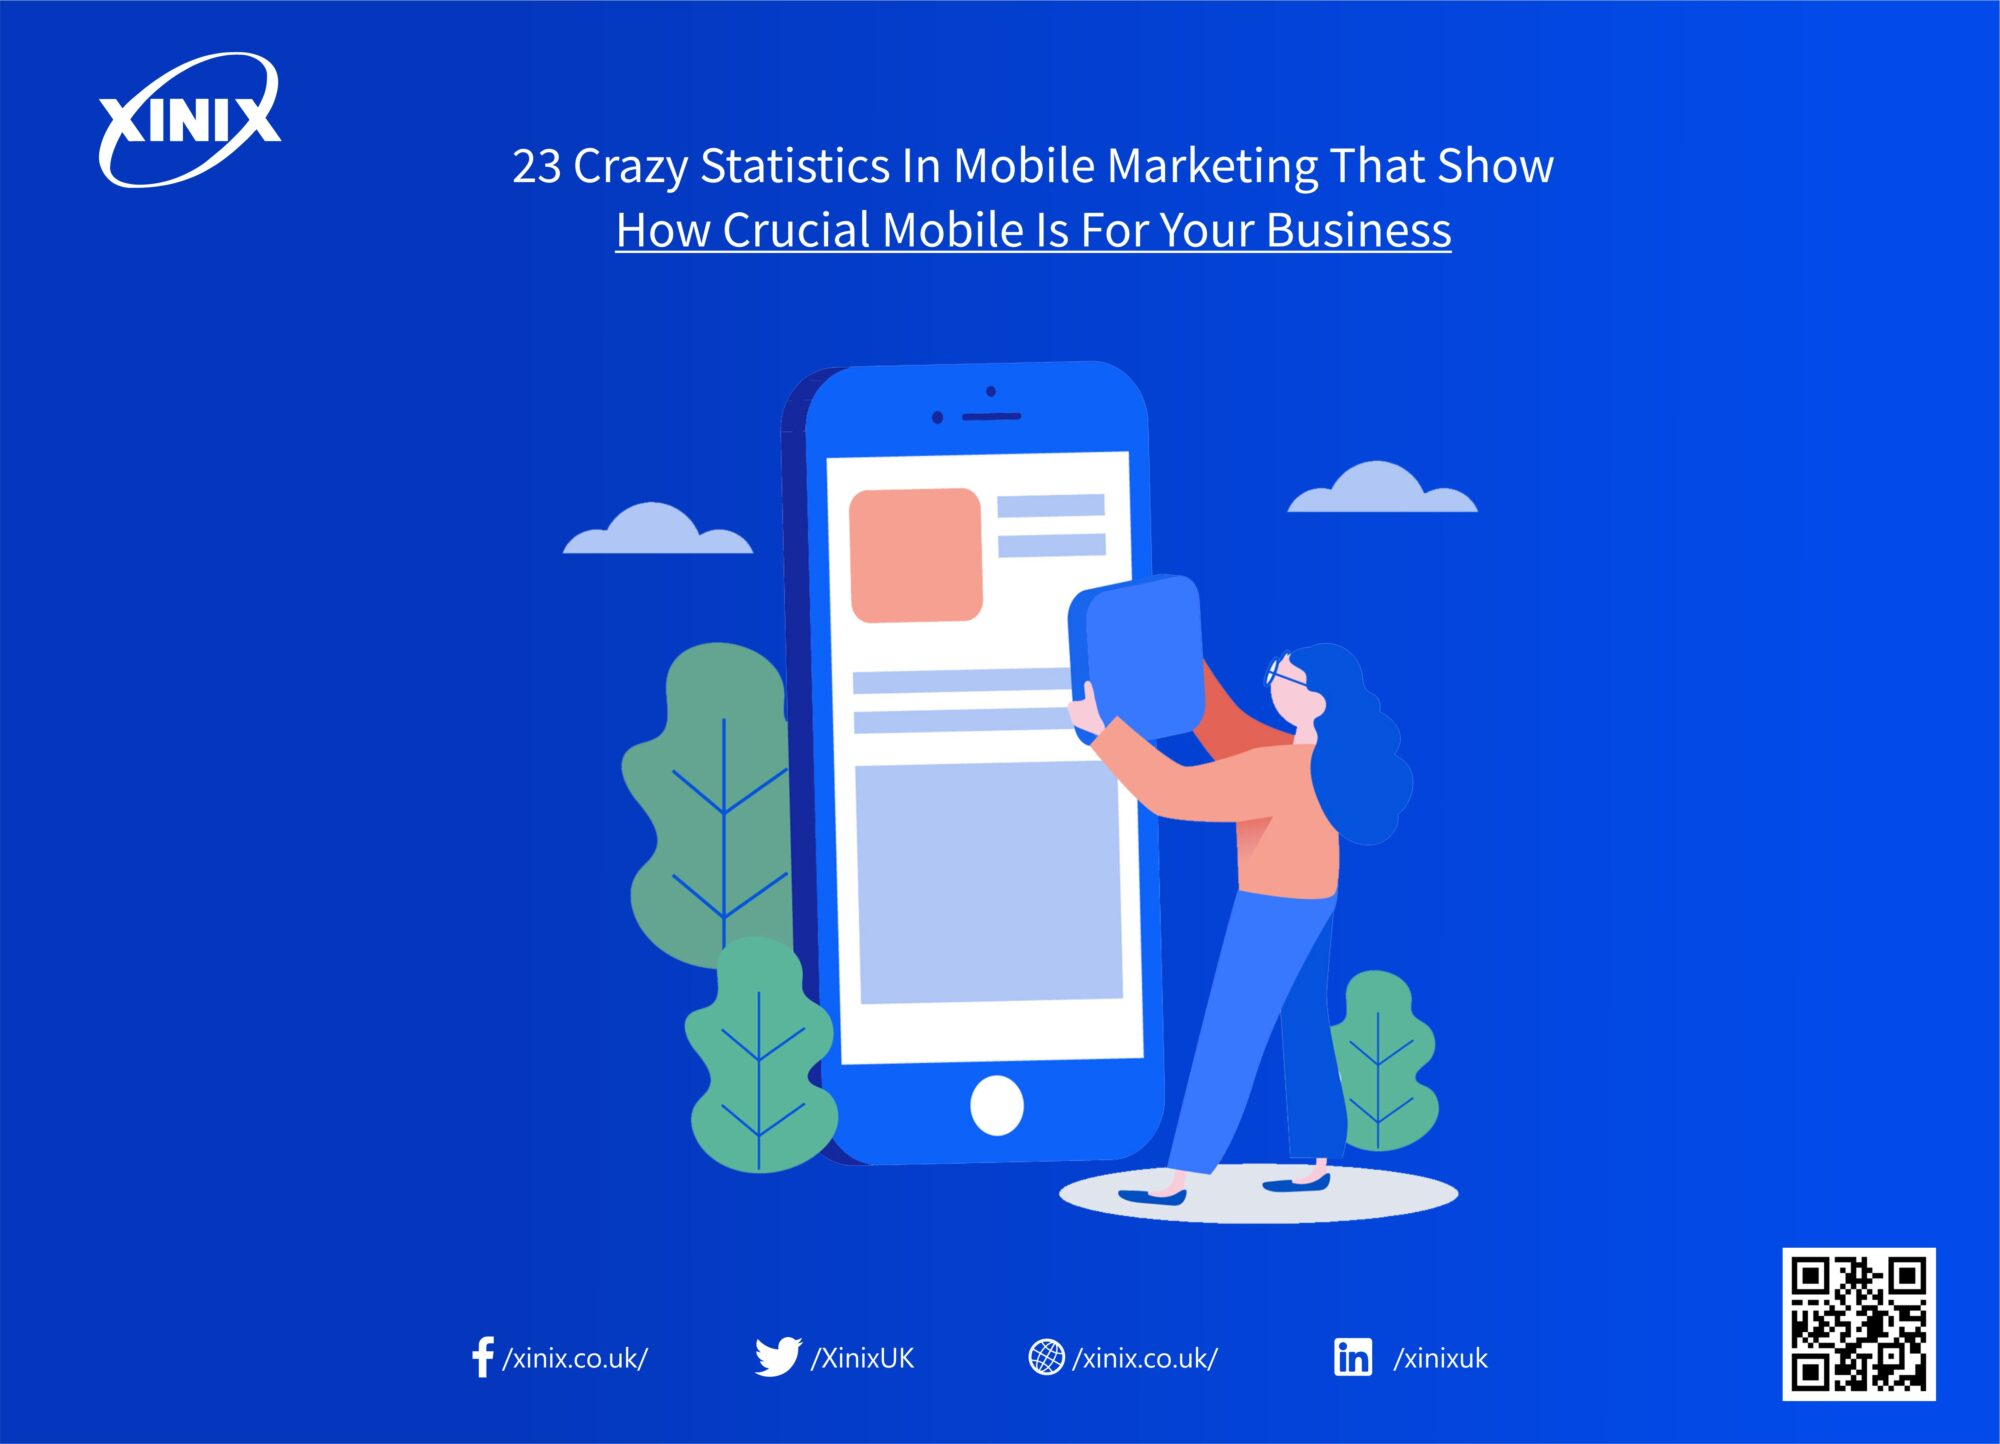 23 Crazy Statistics In Mobile Marketing That Show How Crucial Mobile Is For Your Business